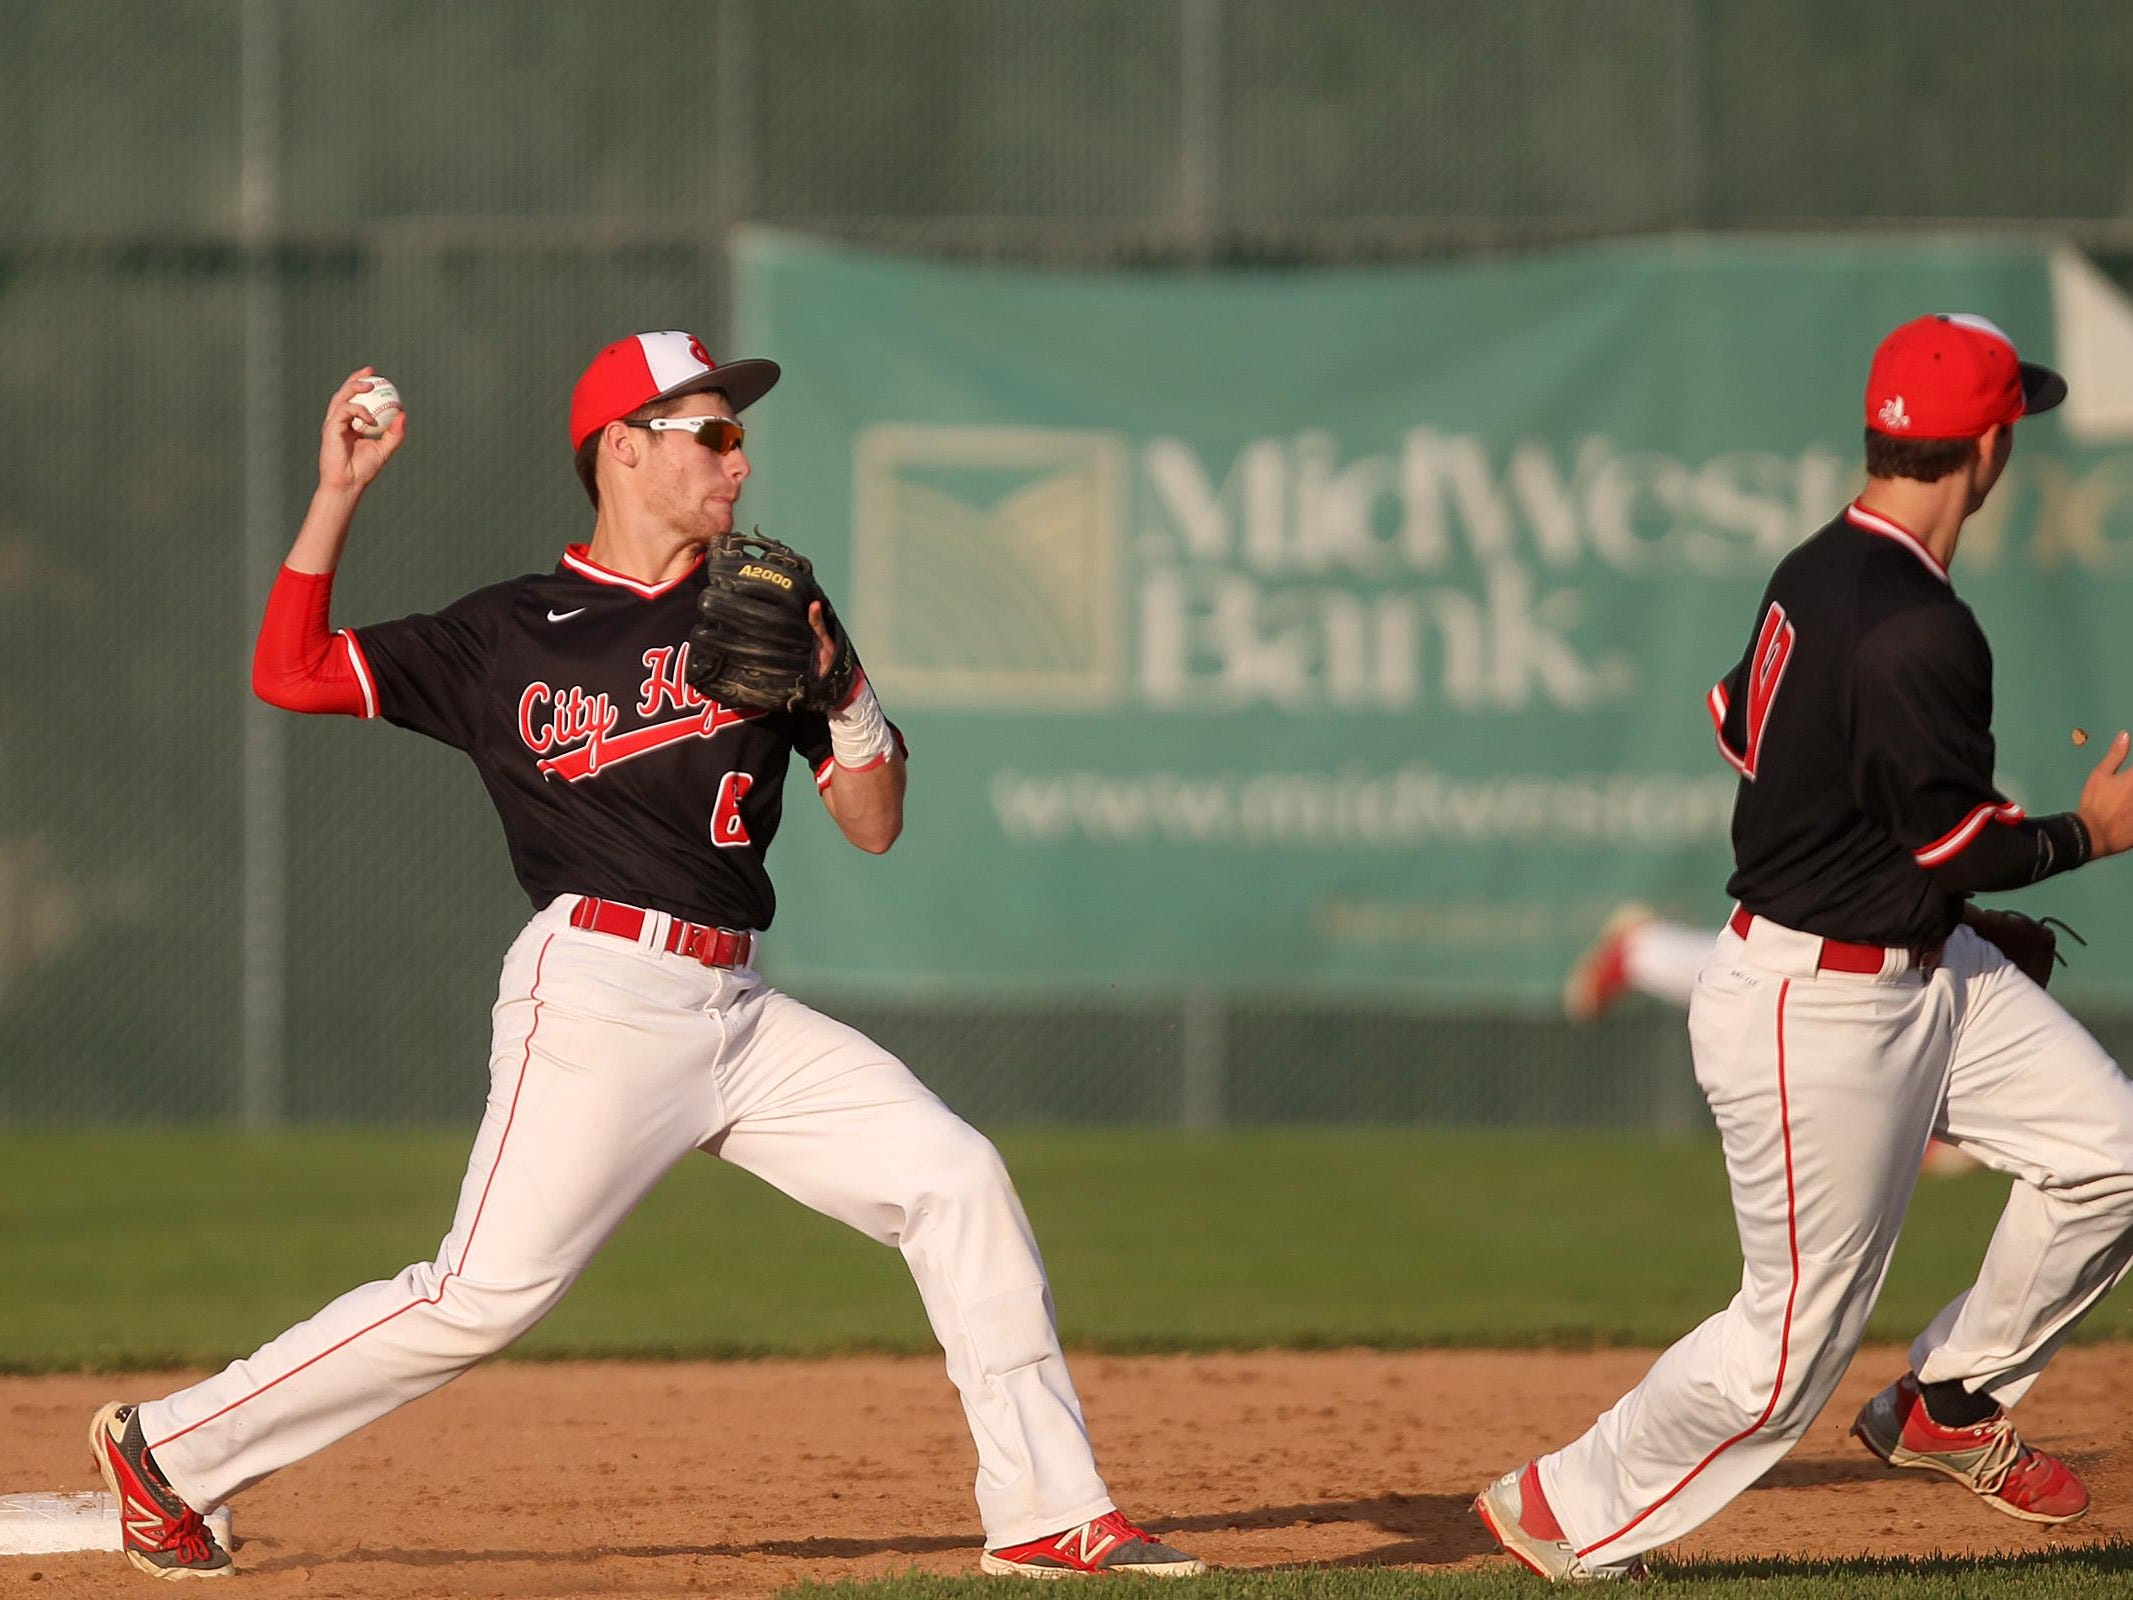 City High's Dylan Leigh throws to first base for a double play during the Little Hawks' game at West High on Tuesday, July 7, 2015. David Scrivner / Iowa City Press-Citizen